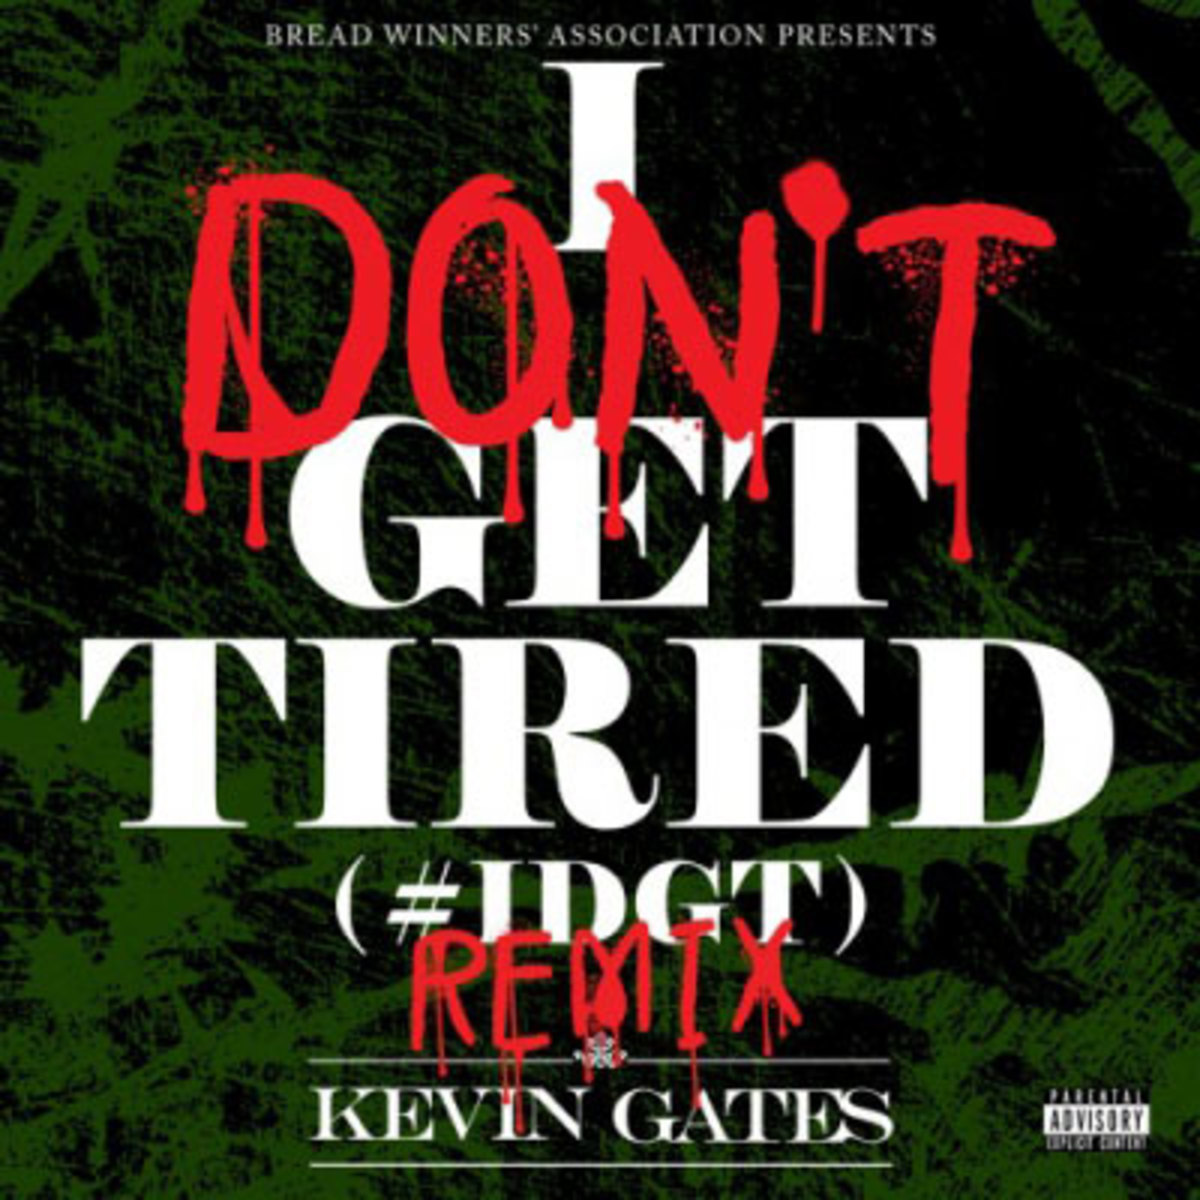 kevin-gates-i-dont-get-tired-remix.jpg